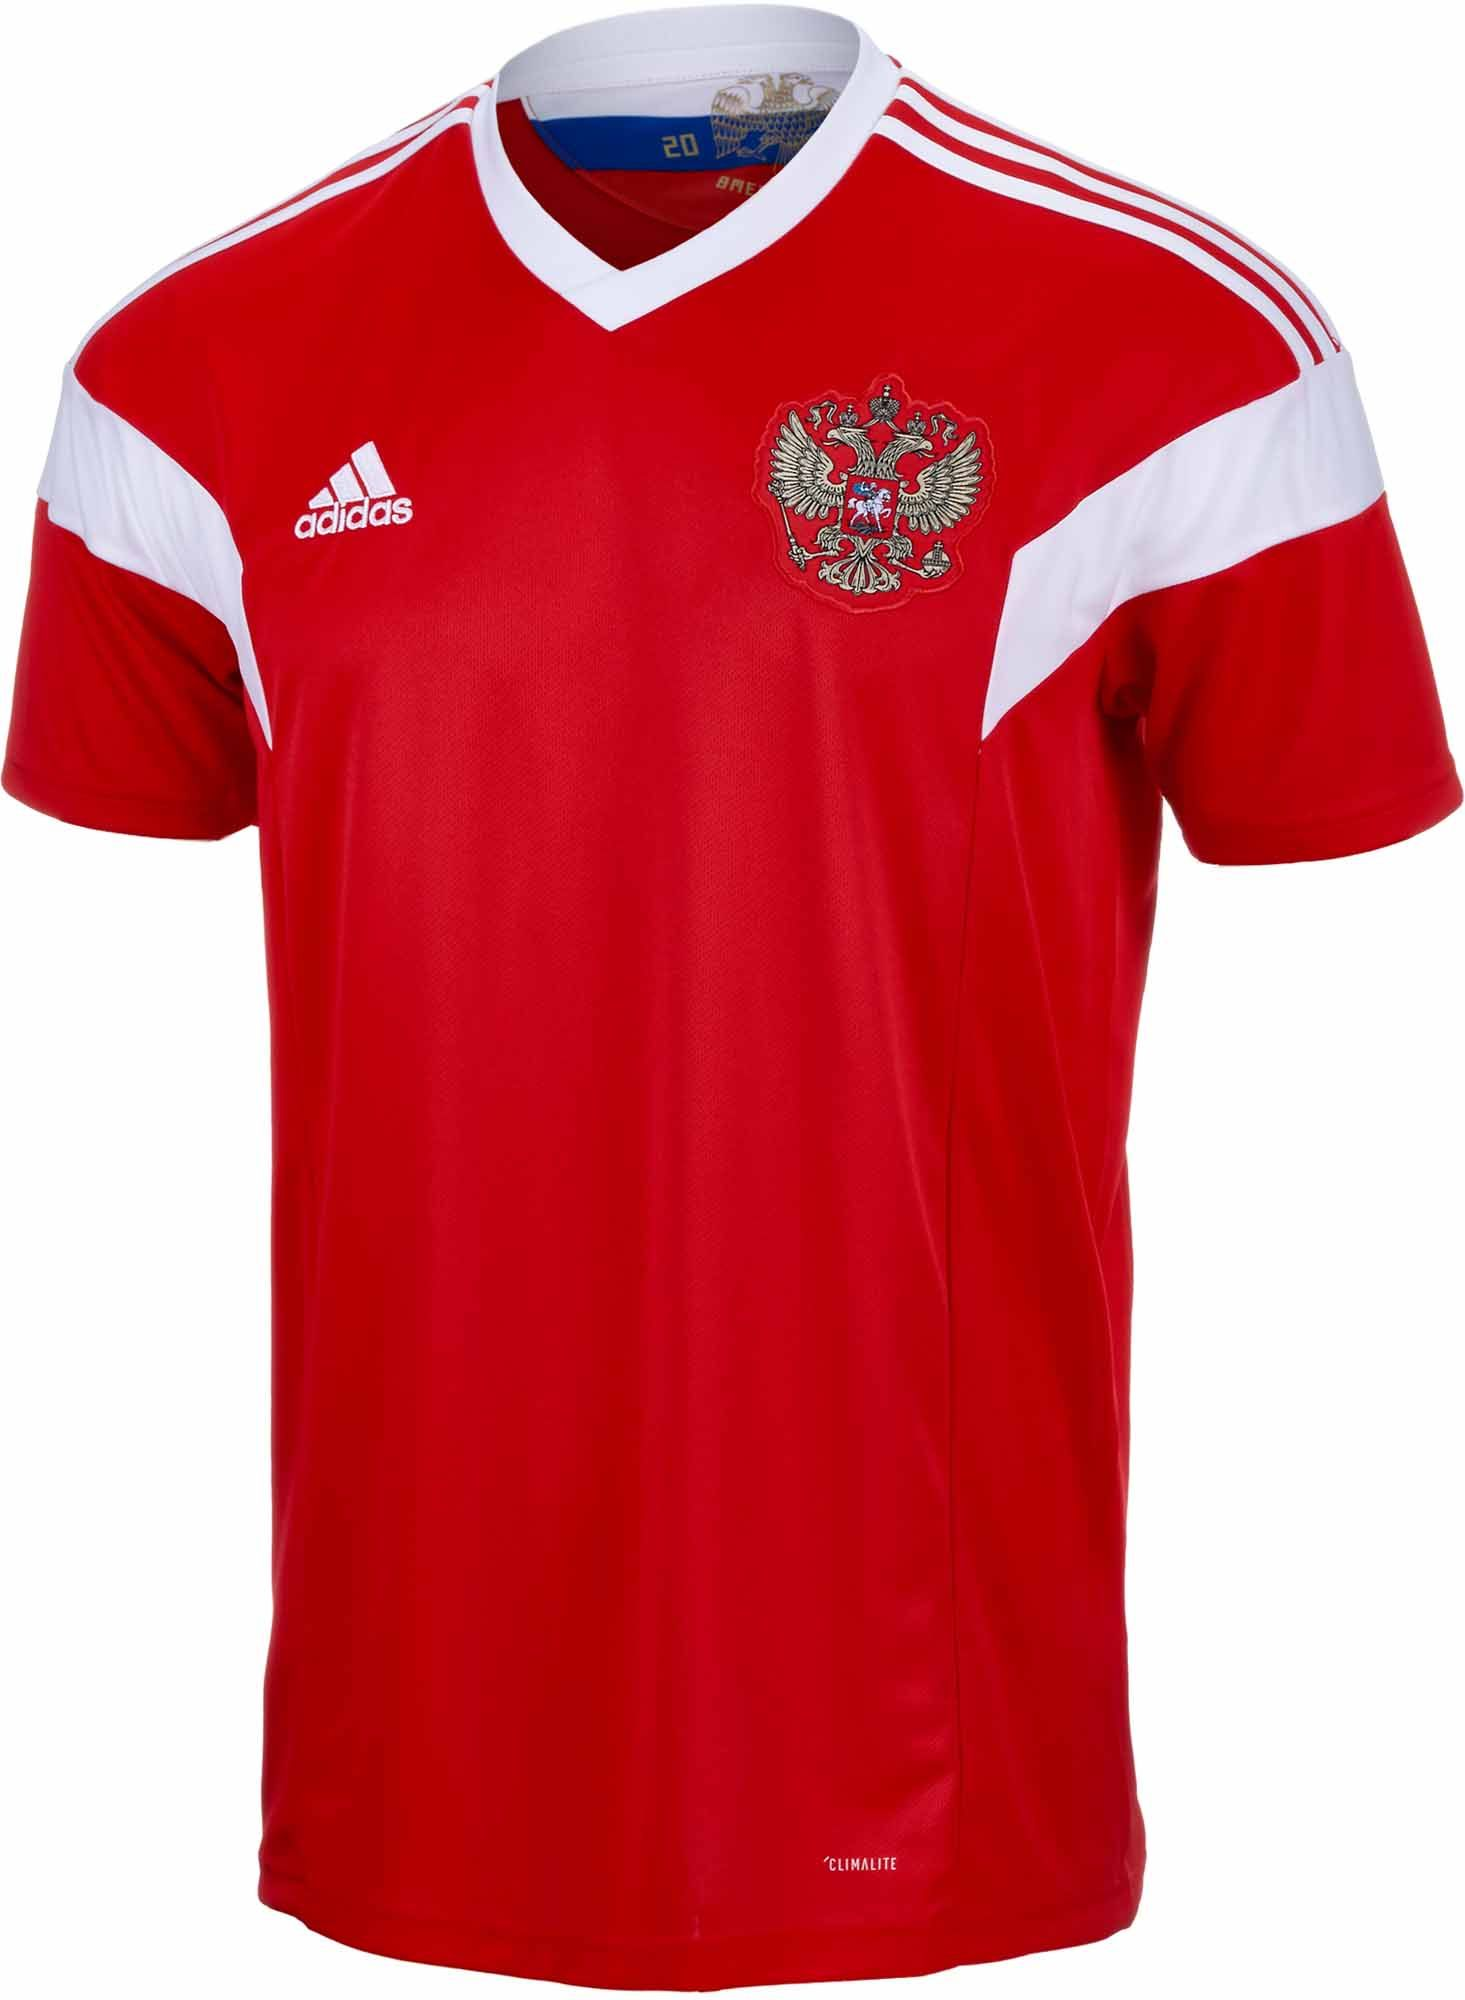 Adidas Russia Home Jersey 2018 19 Soccerpro Com Jersey Soccer Jersey Soccer Tshirts